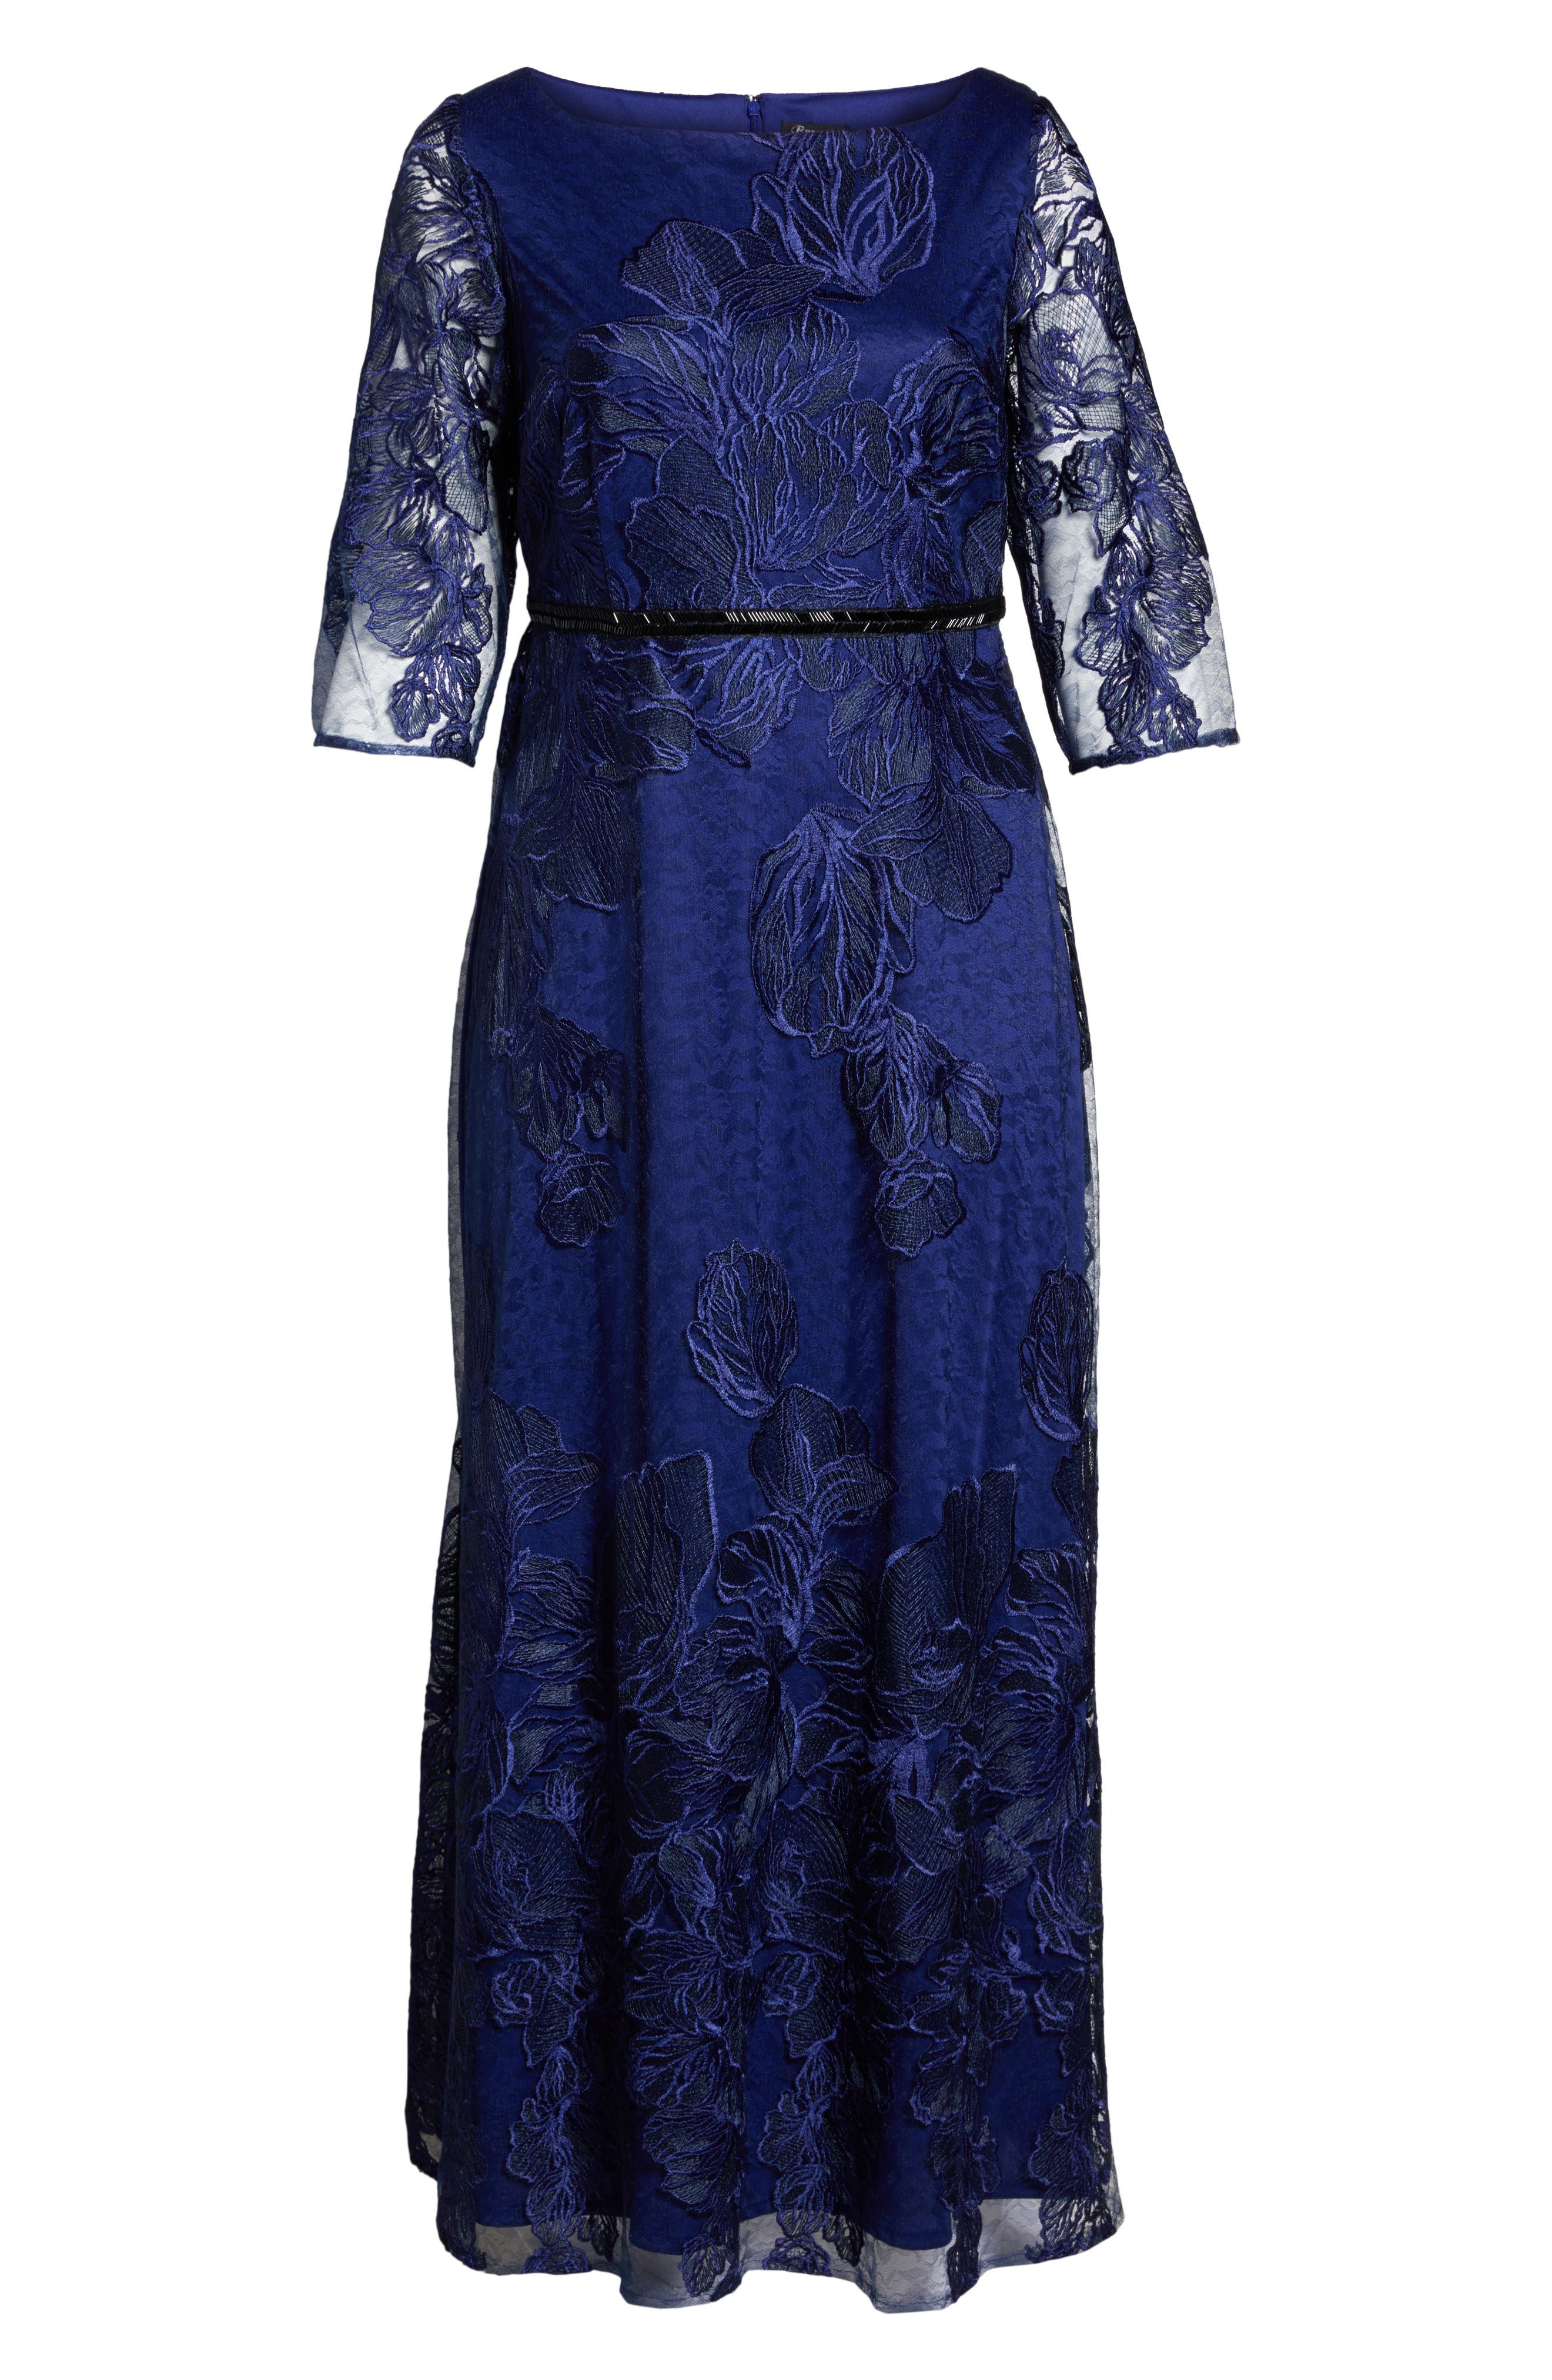 Embellished Floral Lace Gown,                             Alternate thumbnail 6, color,                             410